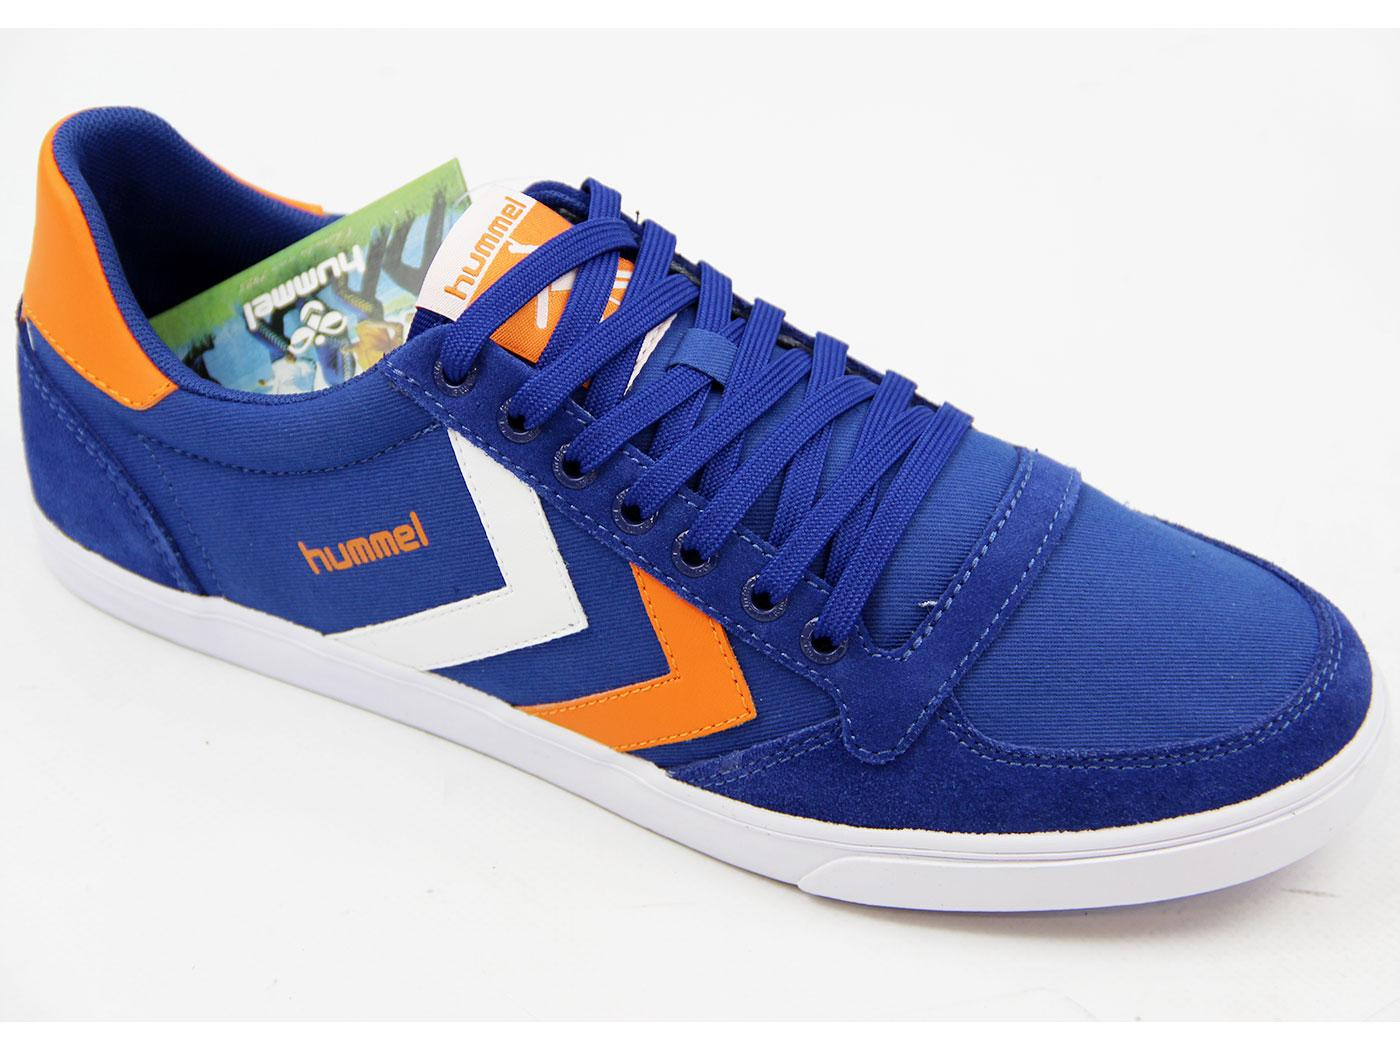 HUMMEL Slimmer Stadil Low Canvas Retro Trainers LB